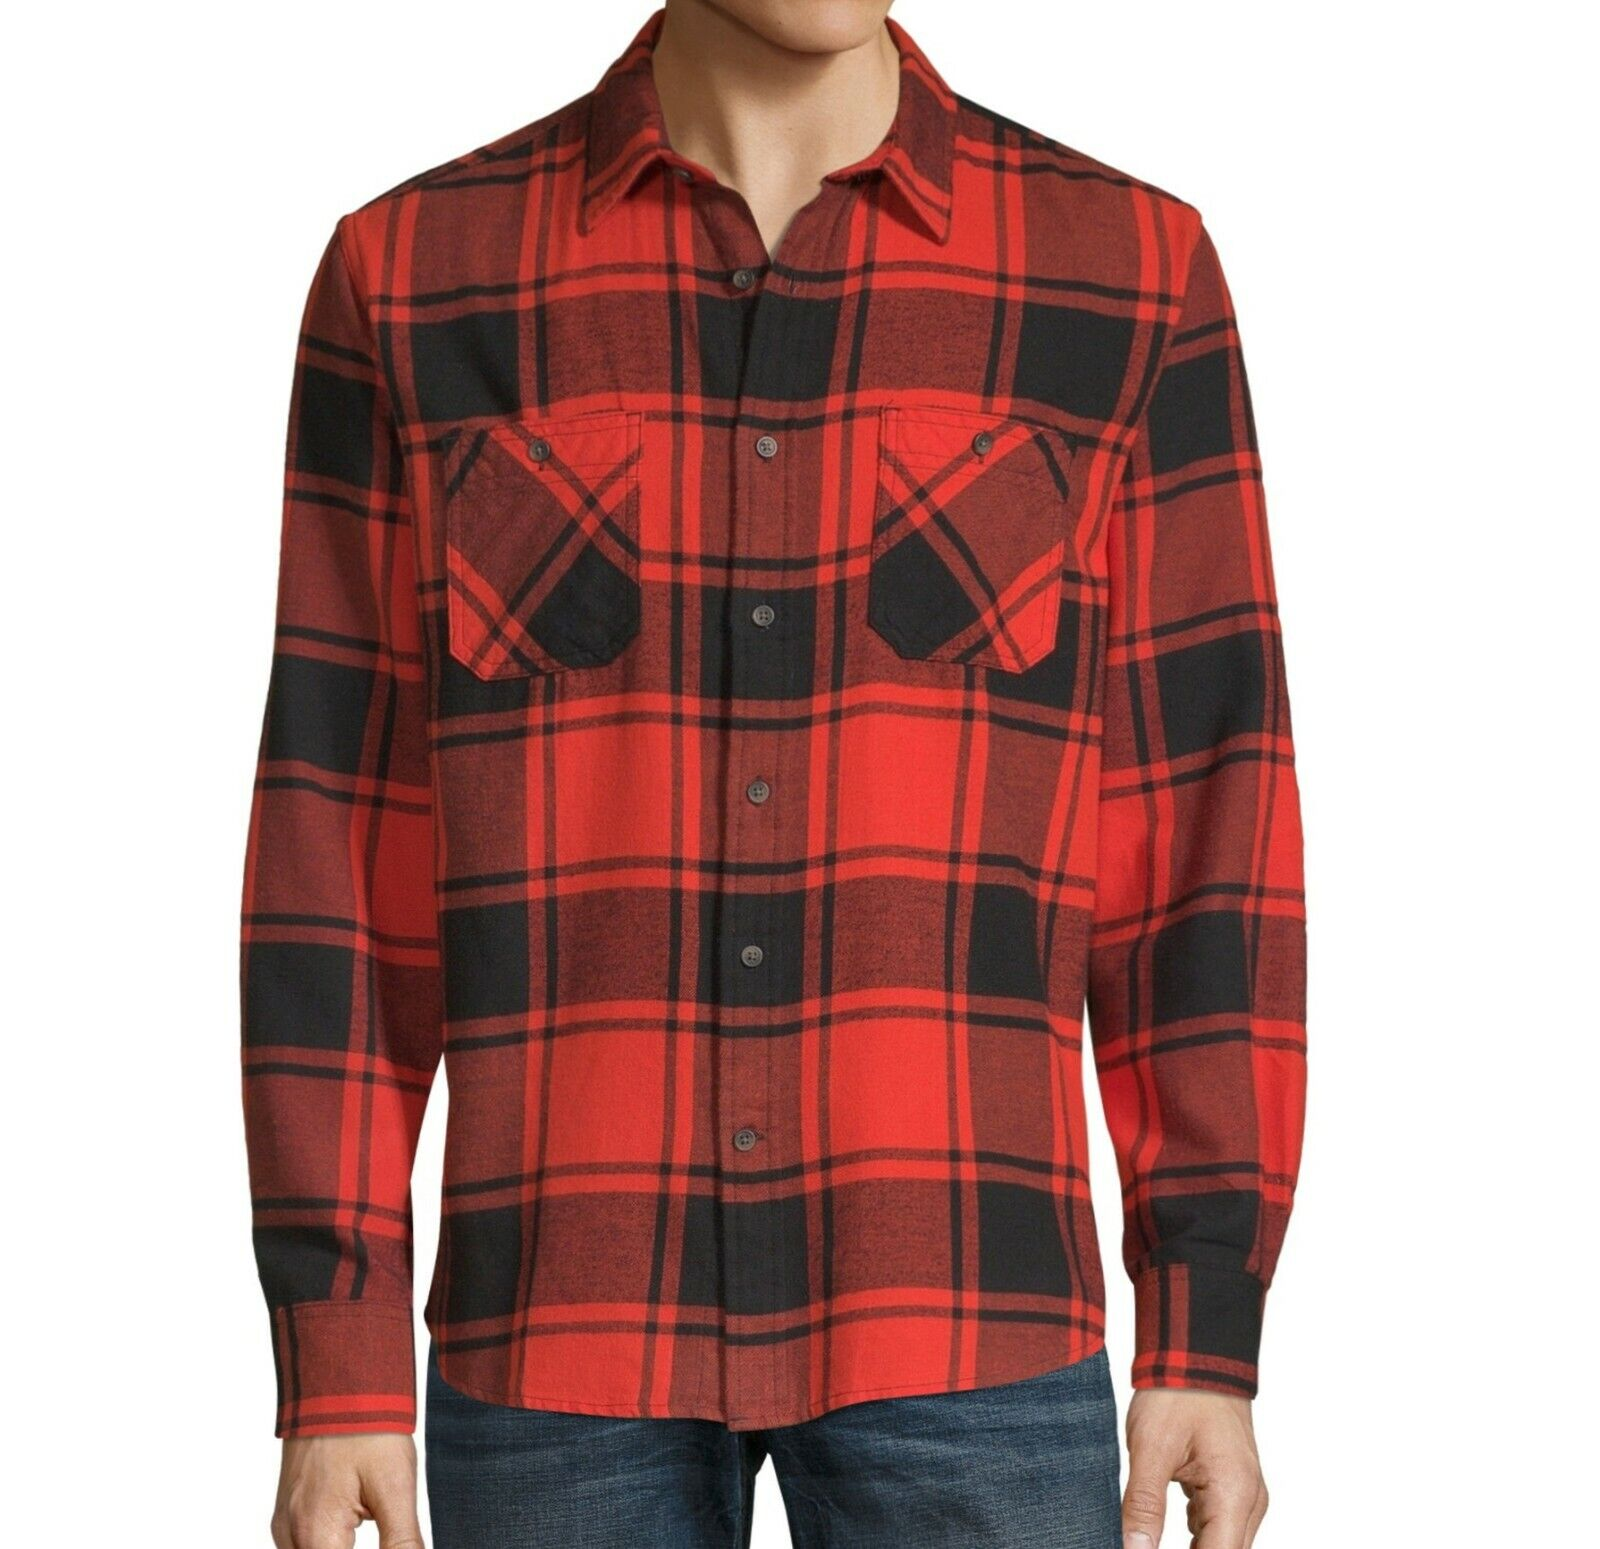 Plaid Shirt Button Up Super Soft Cotton Red Check Flannel Ar